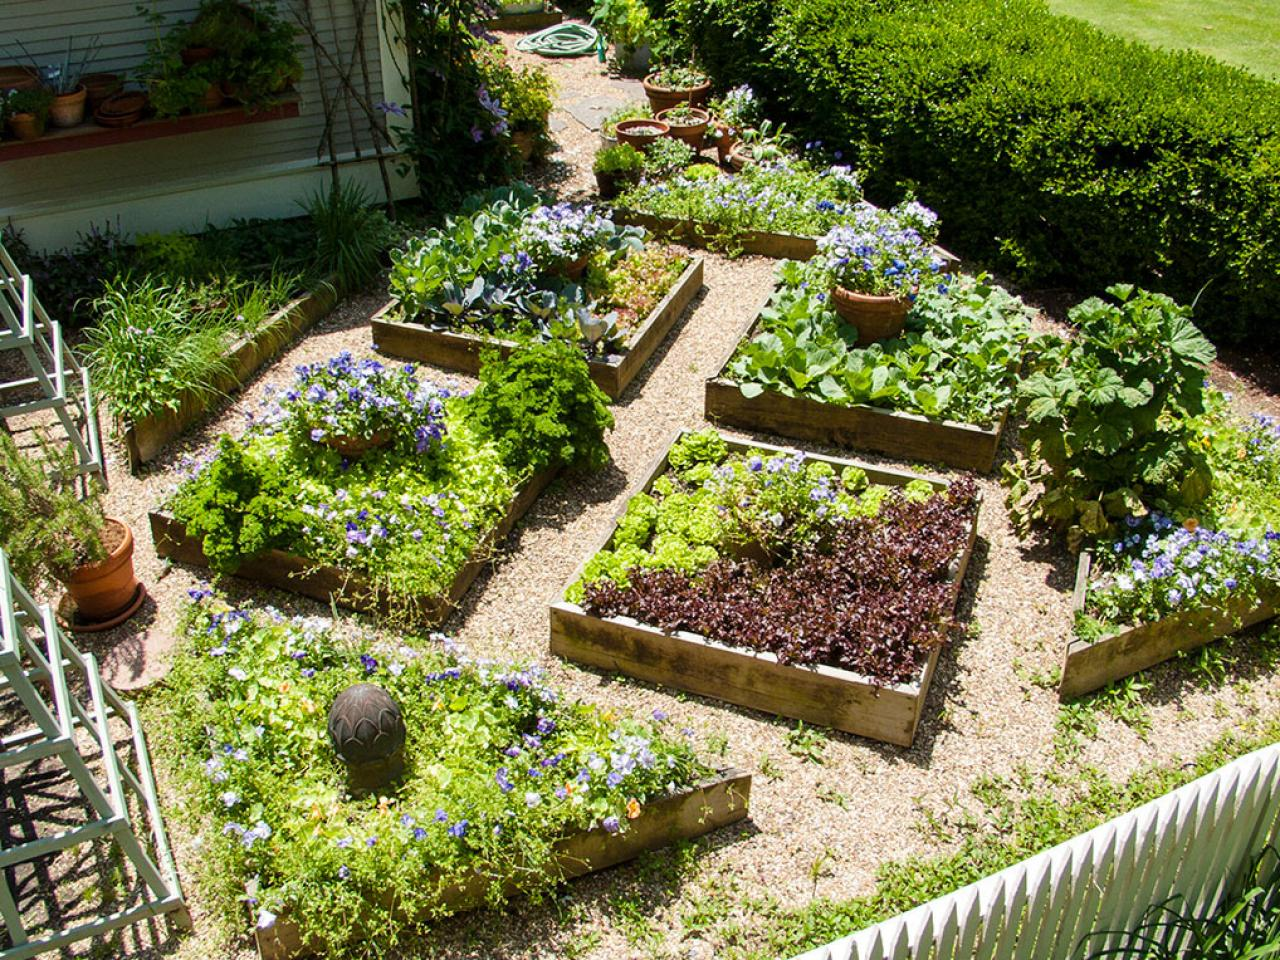 Amazing Vegetable Garden Planting Ideas Part - 6: Flowers And Food, So Healthy Together